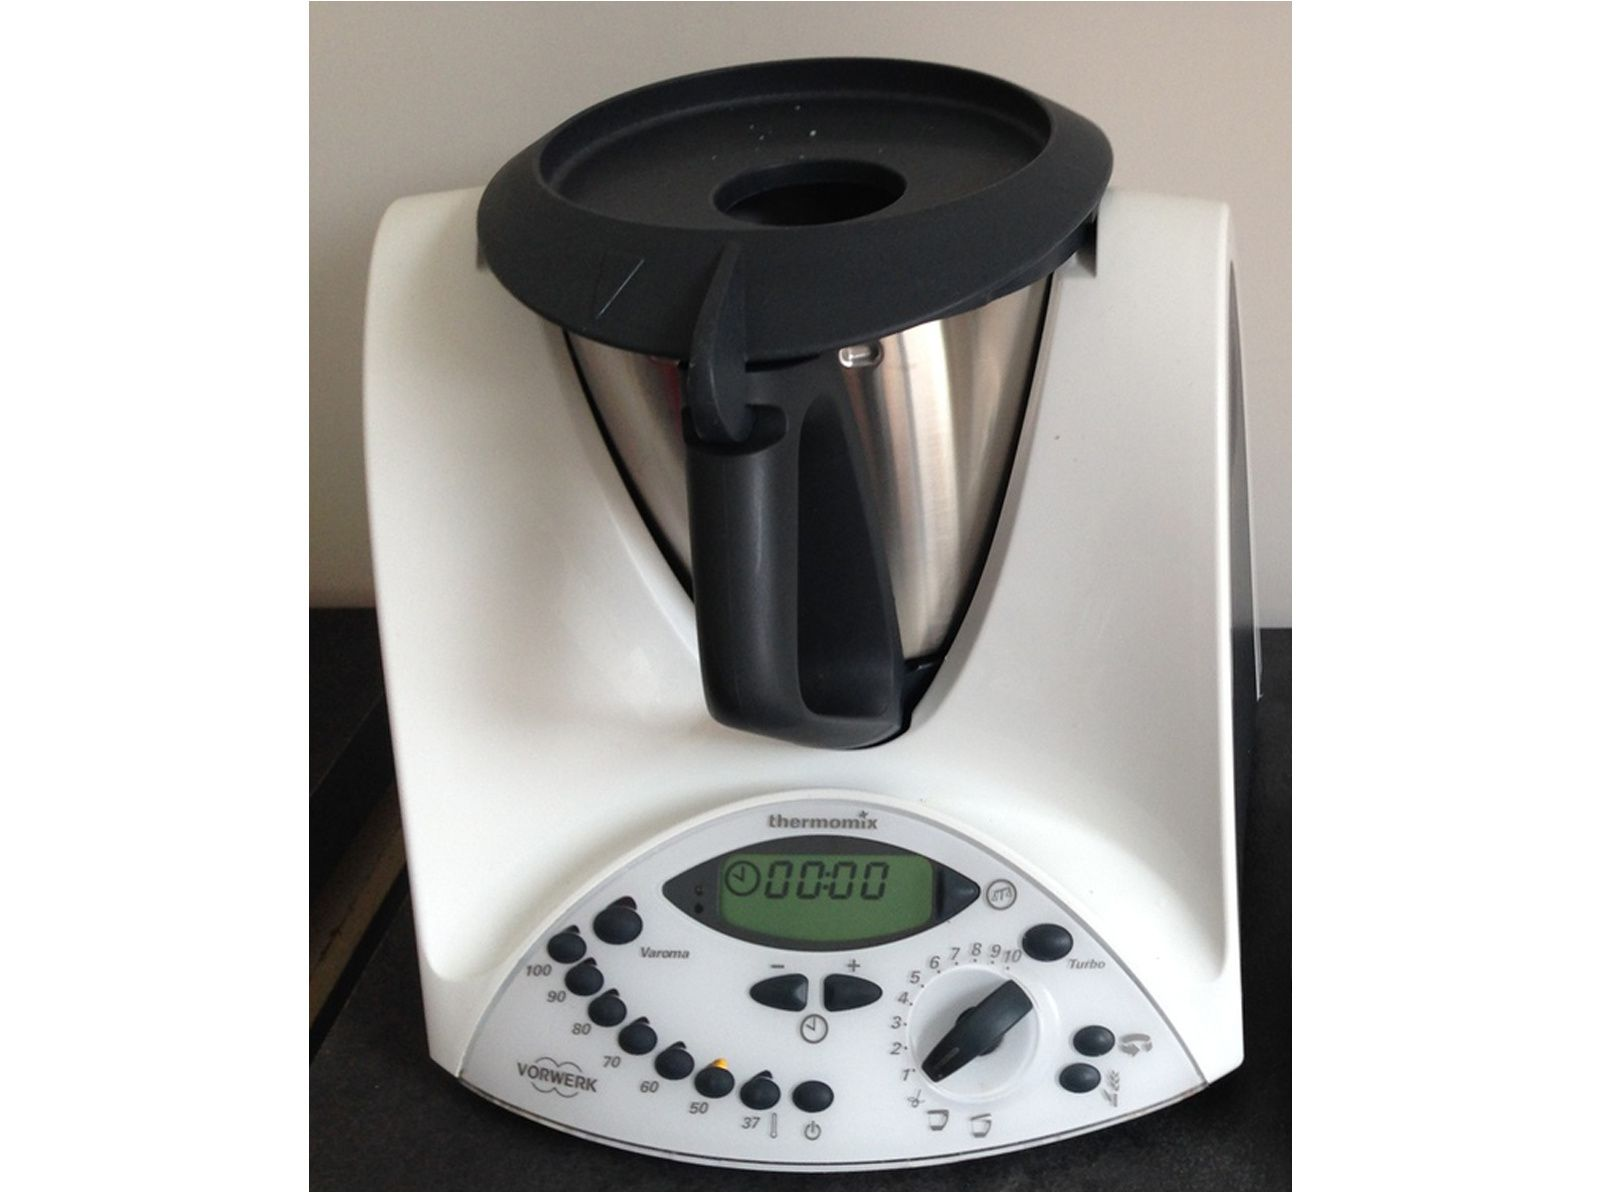 mes recettes pour tester un robot cuiseur test moulinex companion vorwerk thermomix magimix. Black Bedroom Furniture Sets. Home Design Ideas